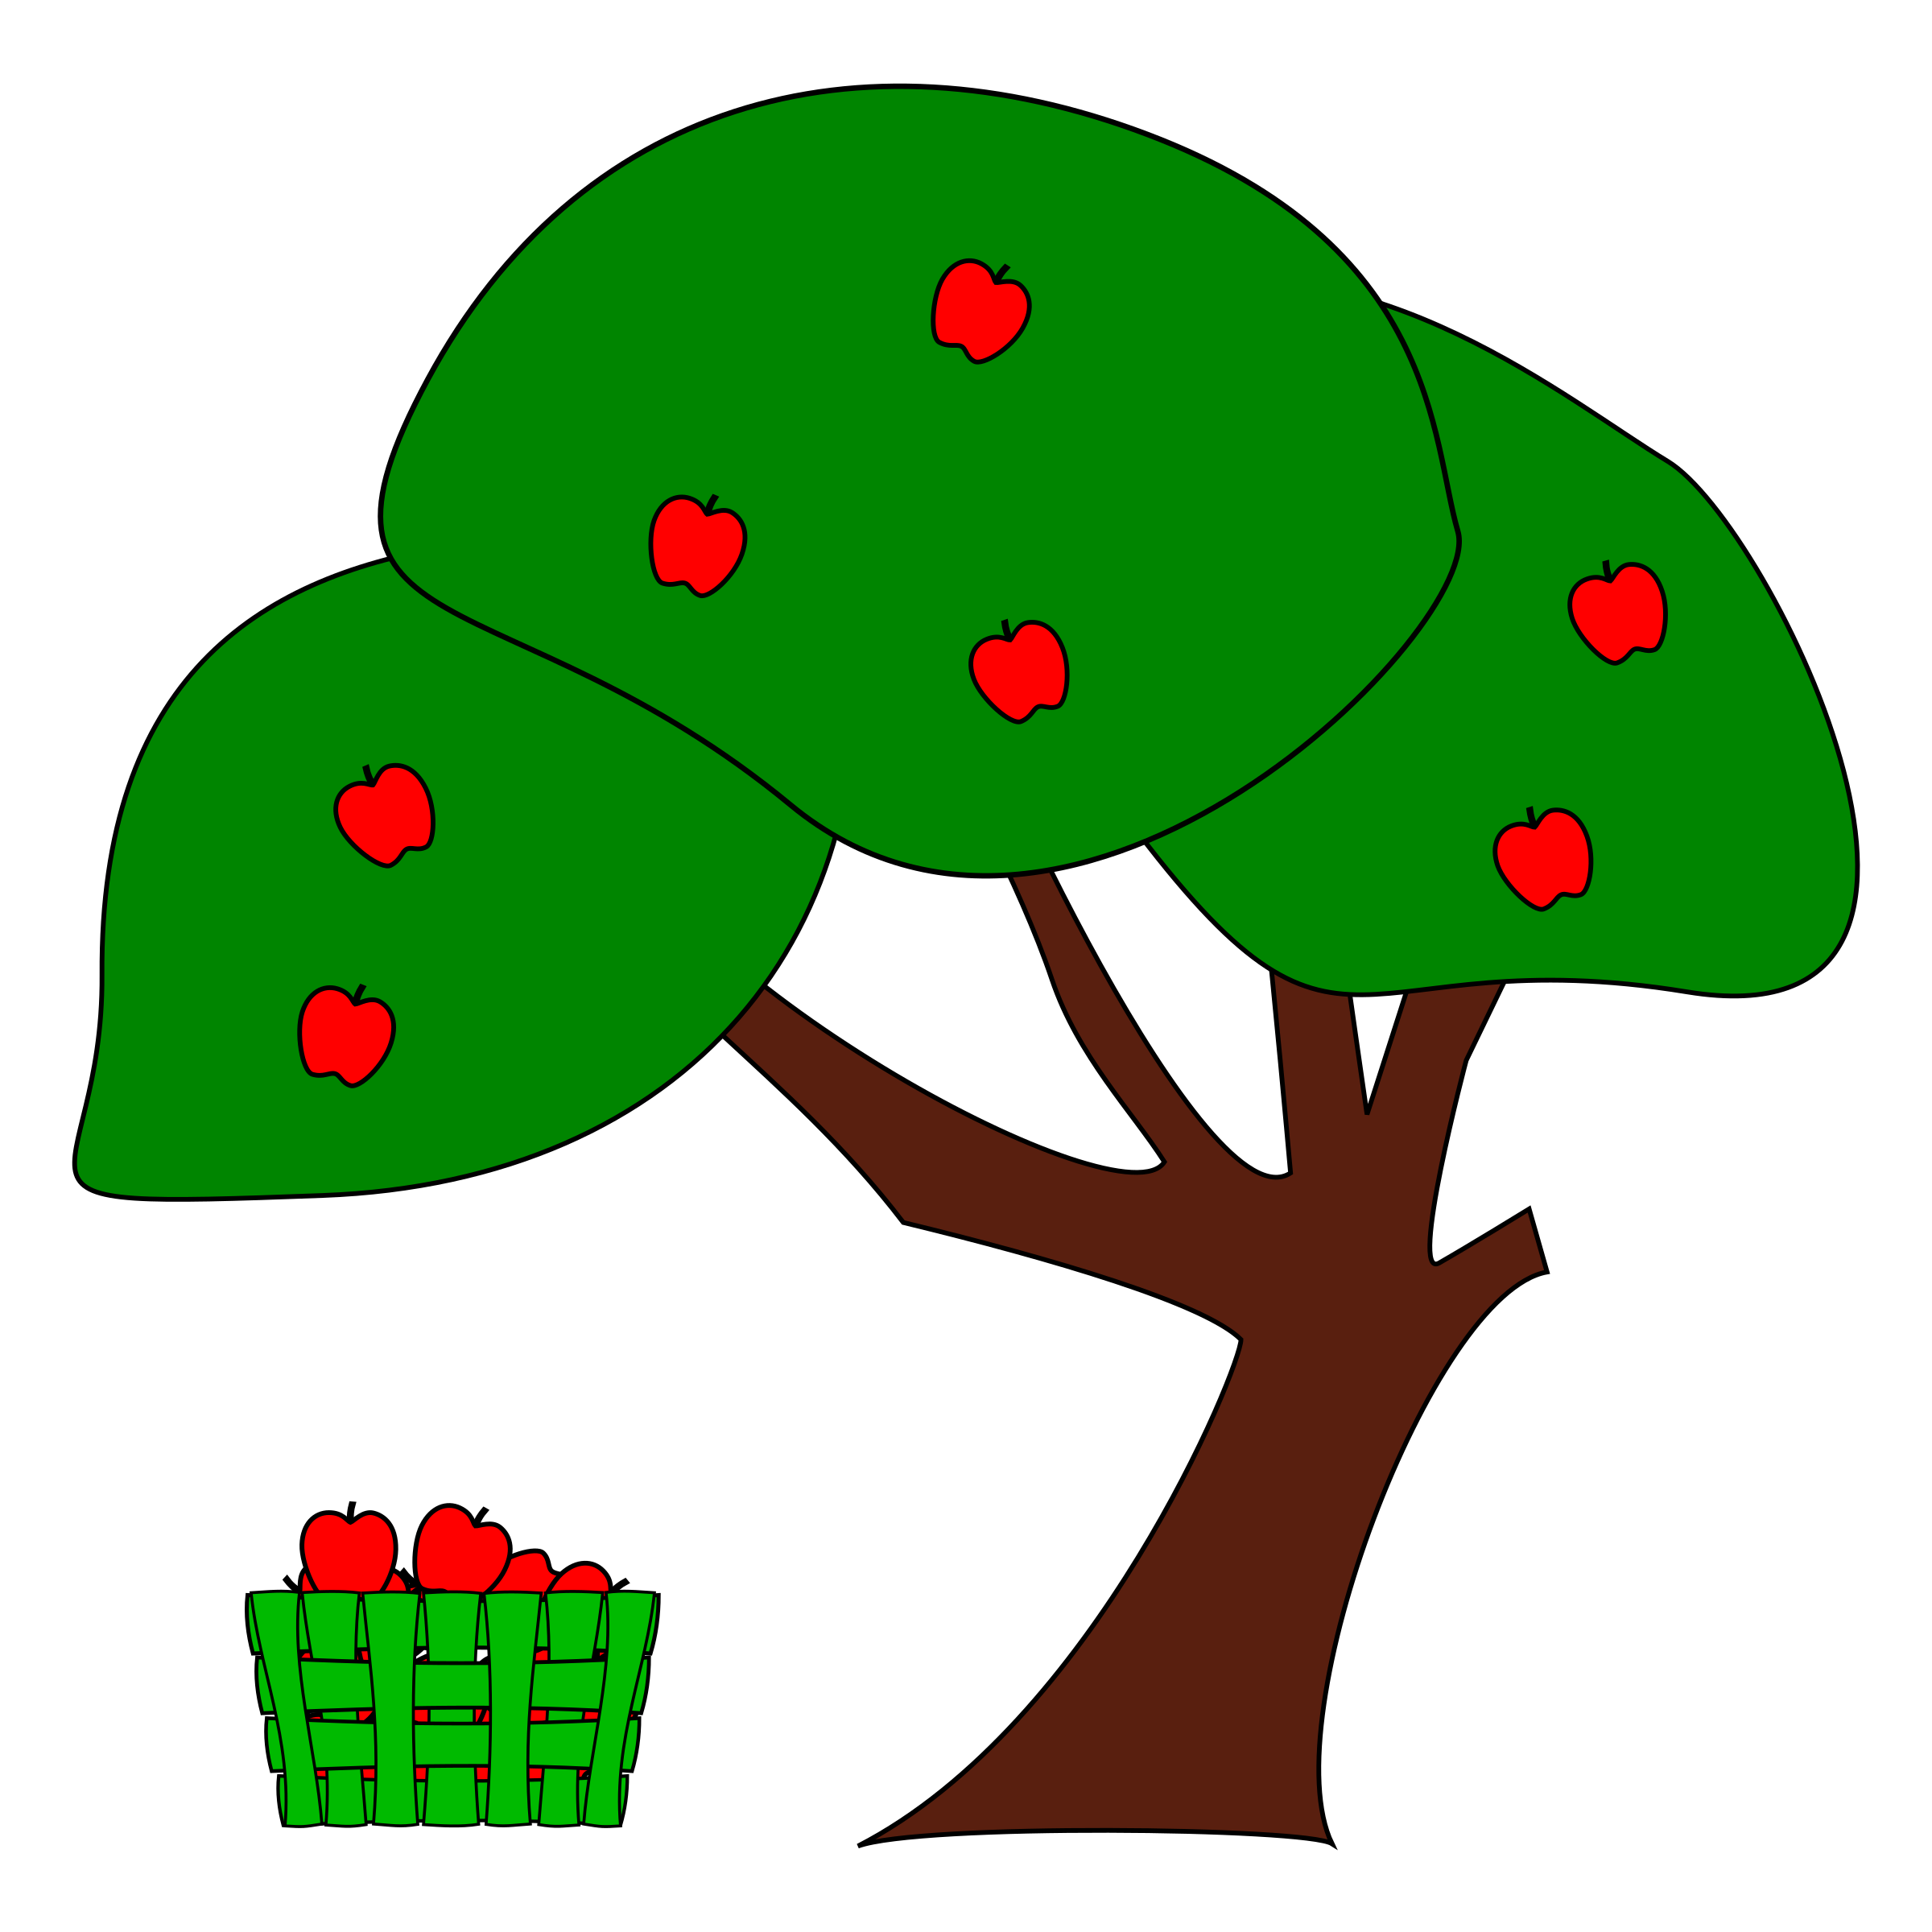 Converse clipart green clipart. Apple tree big image